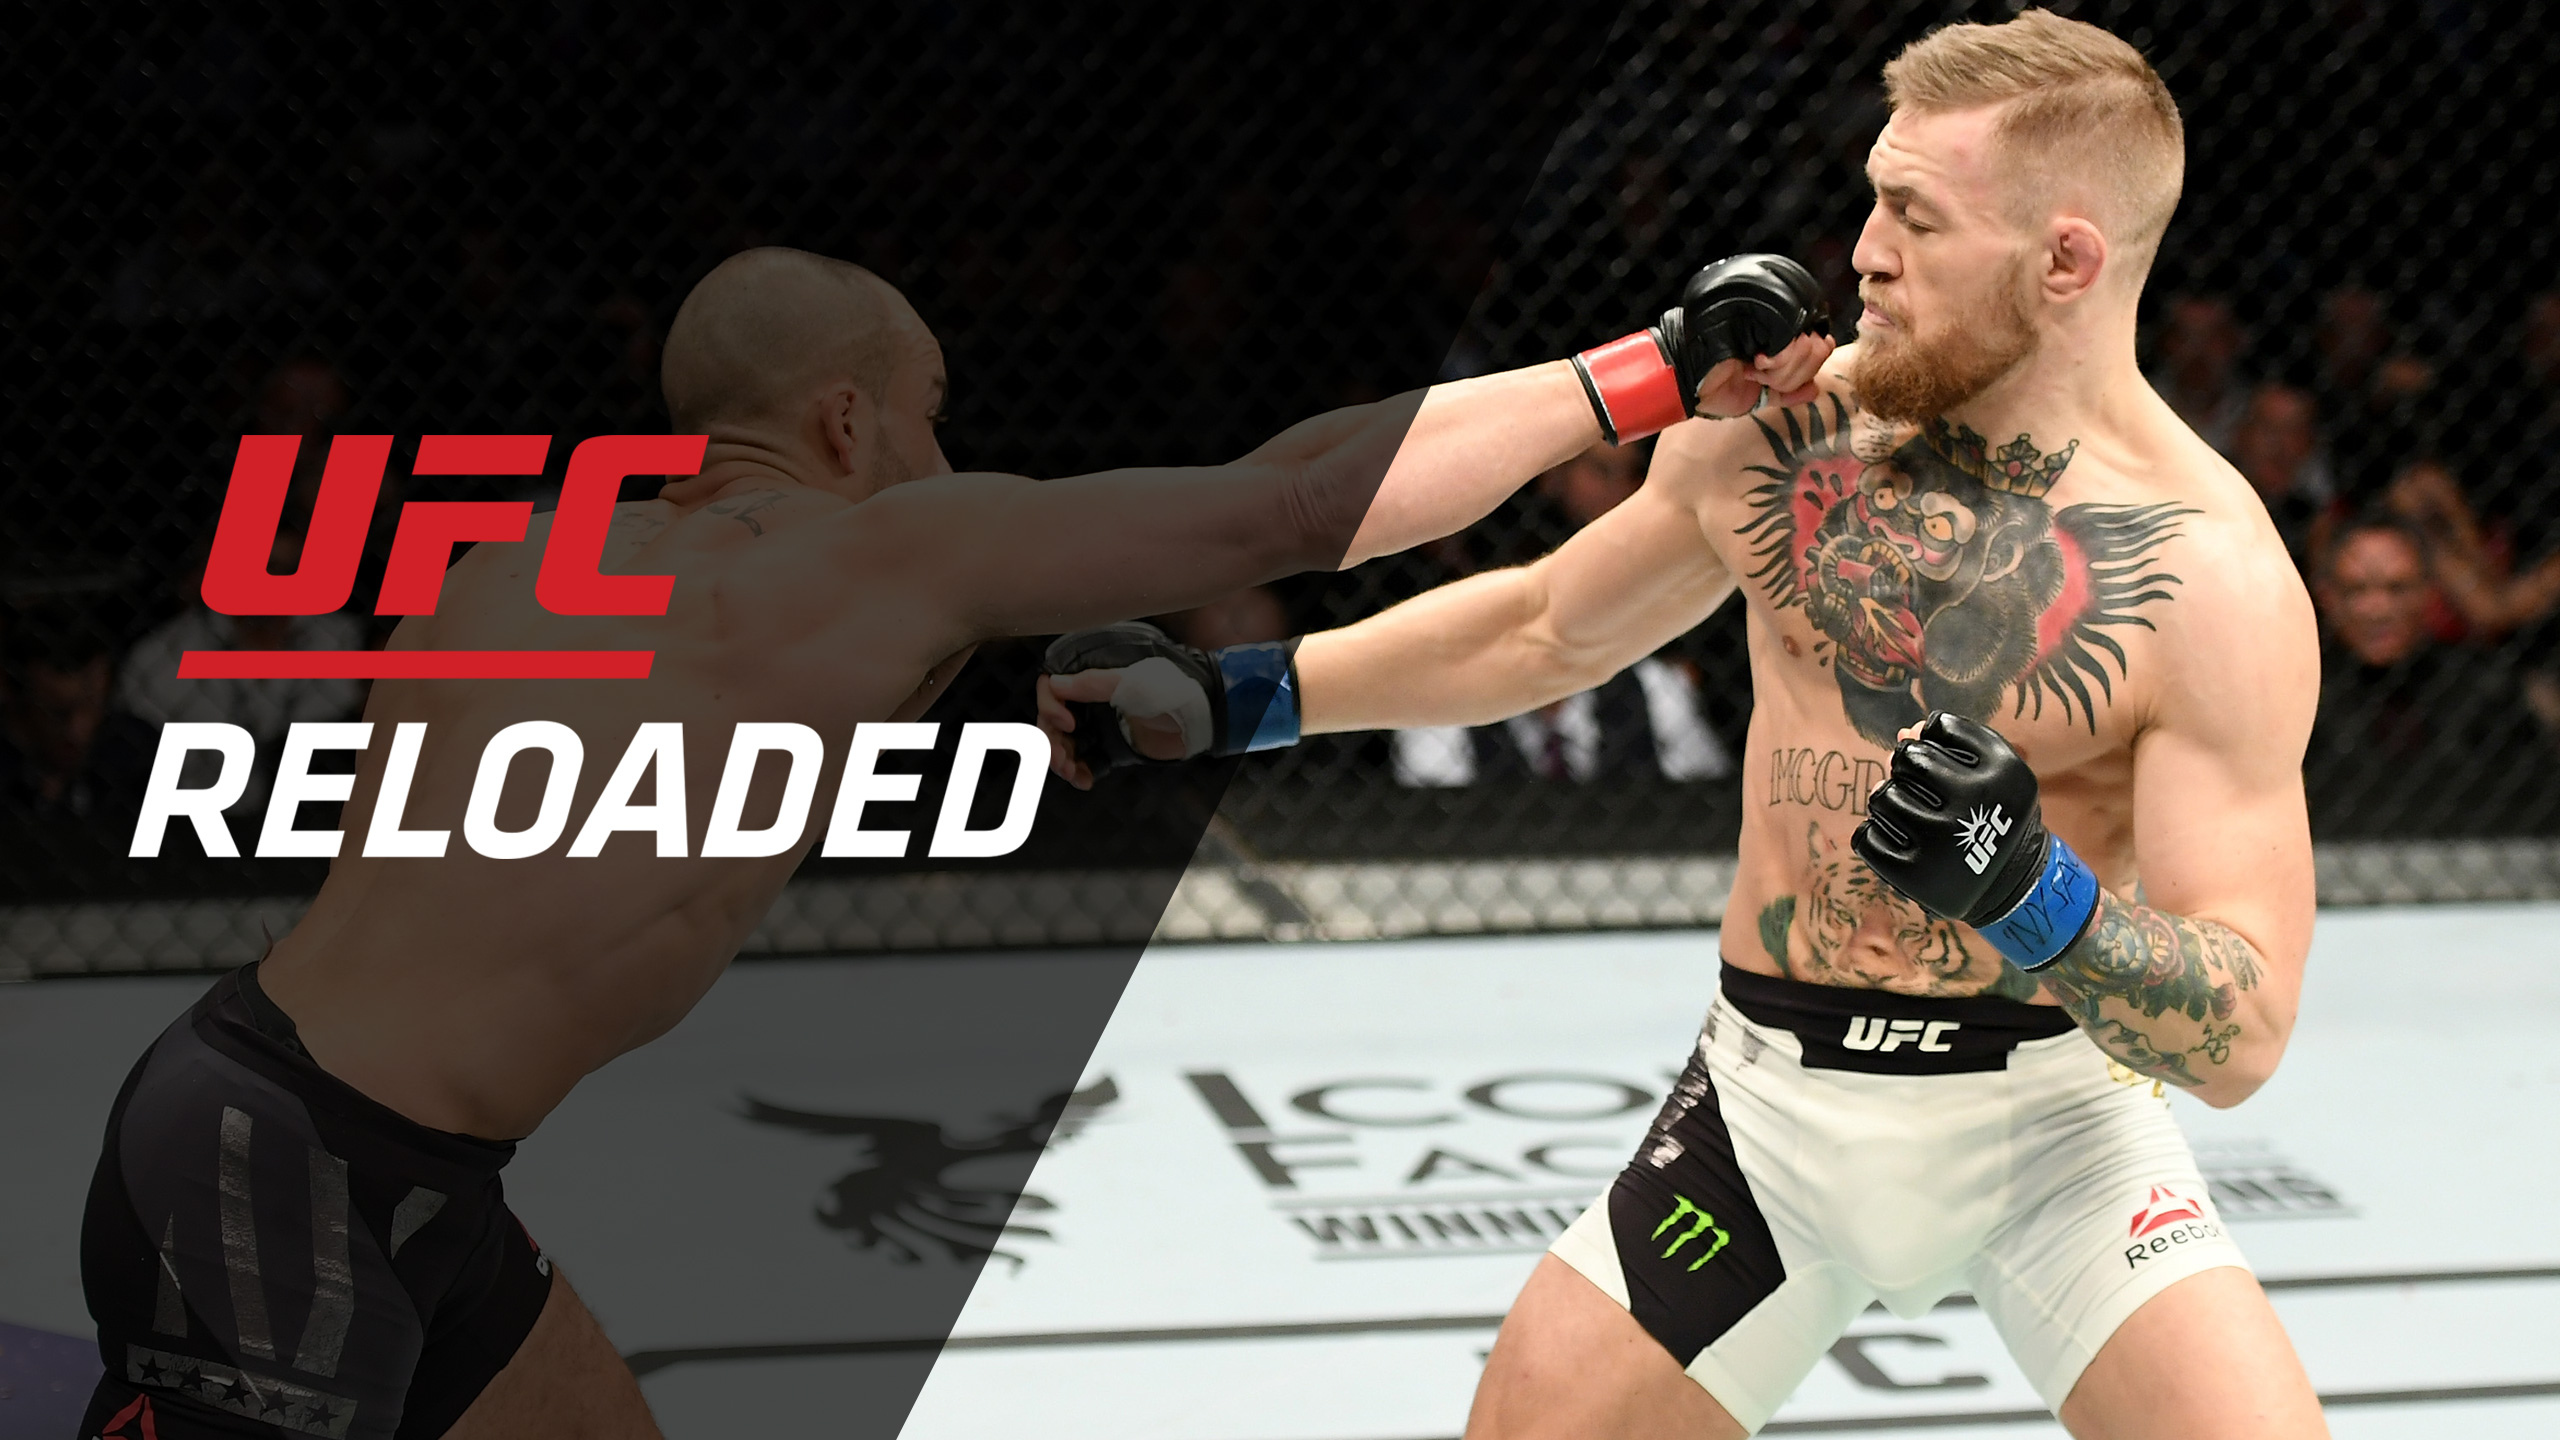 UFC Reloaded: 205: Alvarez vs. McGregor